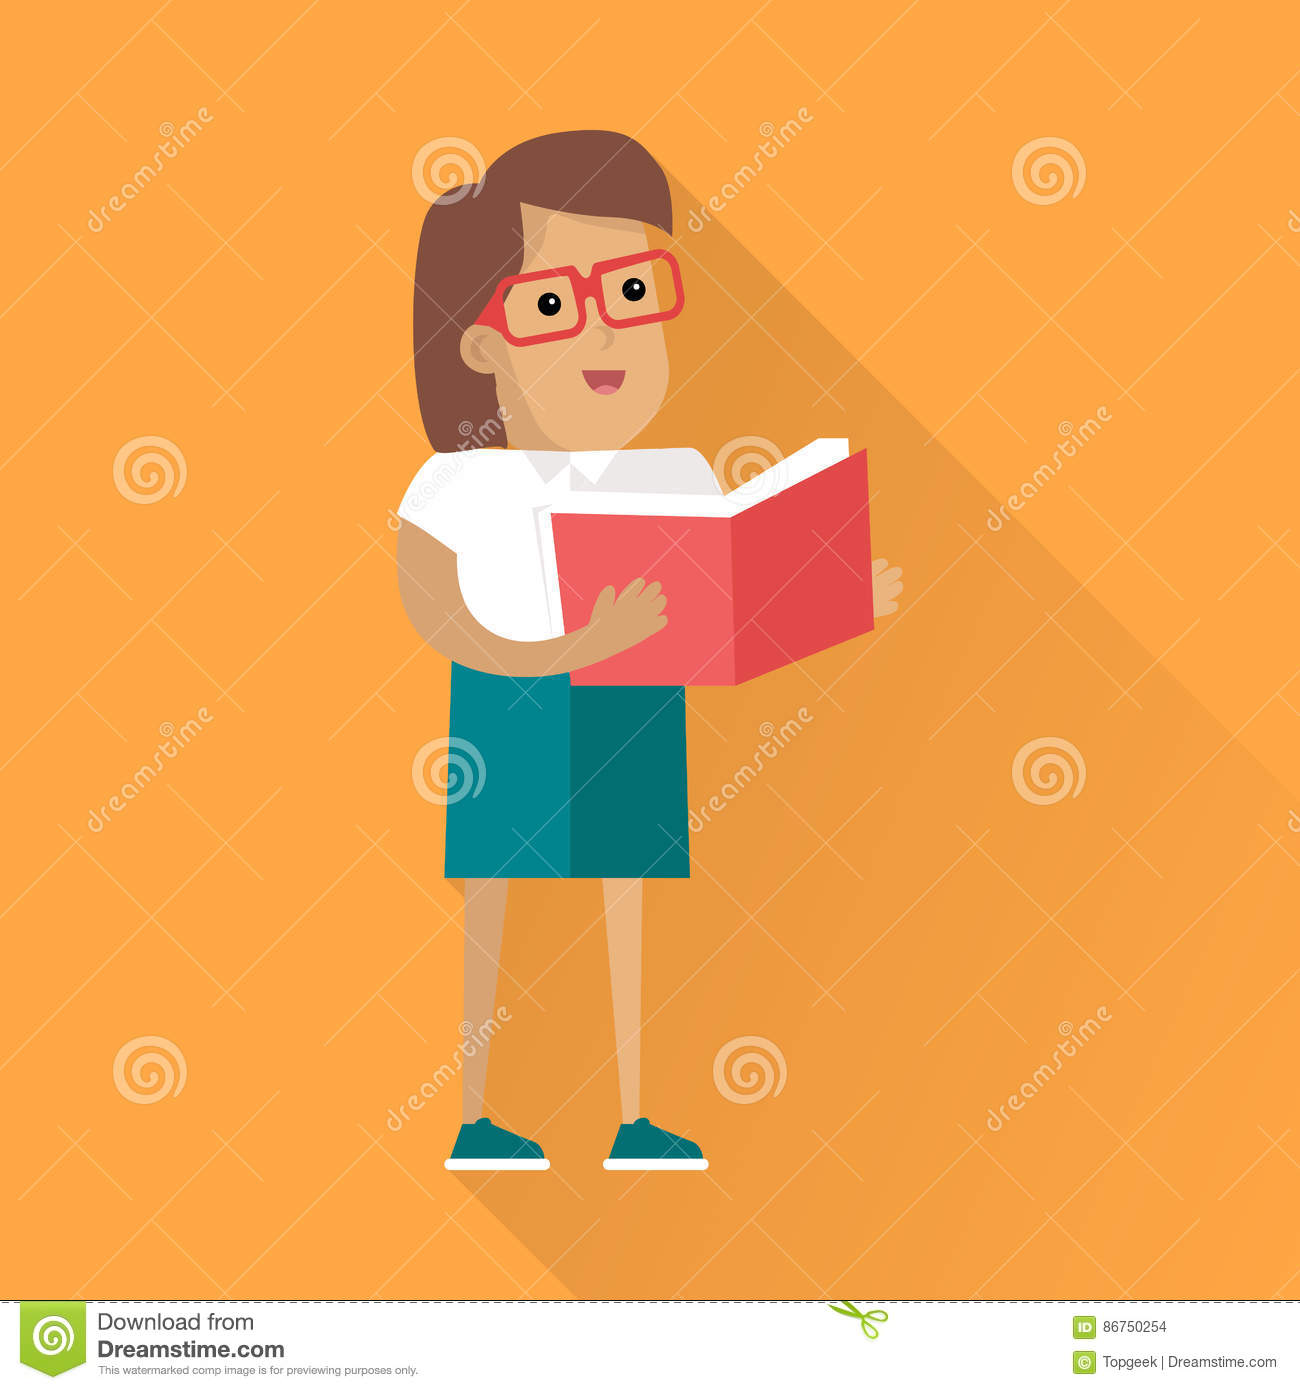 1d7e07b6f158 Woman character in glasses standing with a book in their hands.  Self-education and gain knowledge. On orange background with shadow